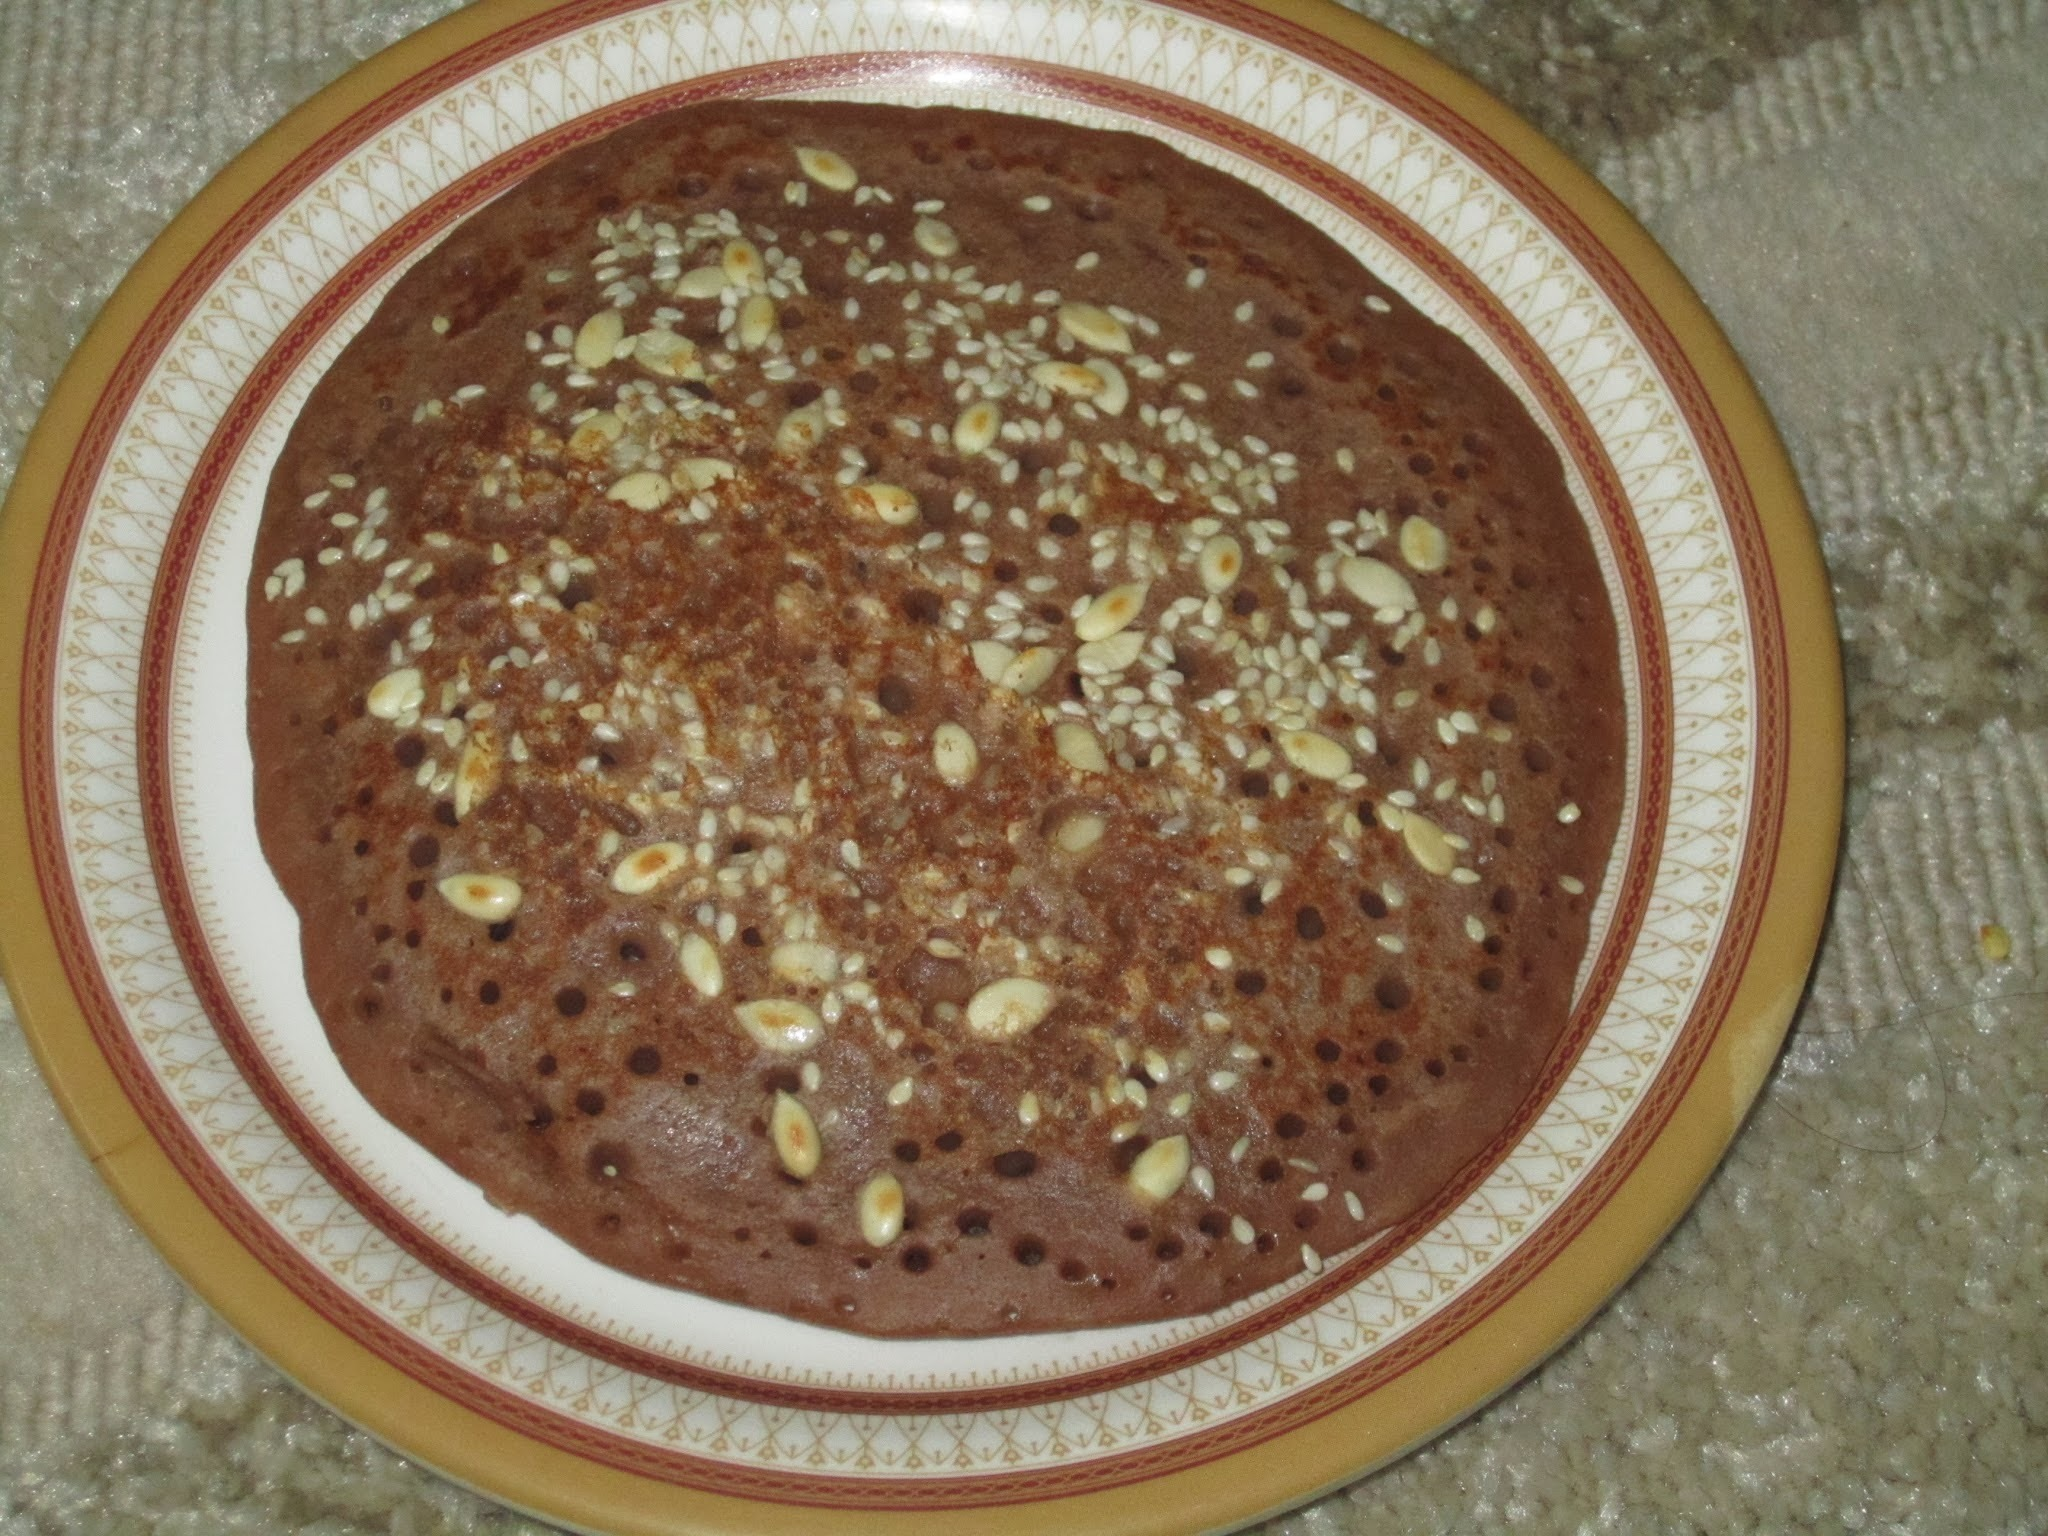 Barley chocolate pancake